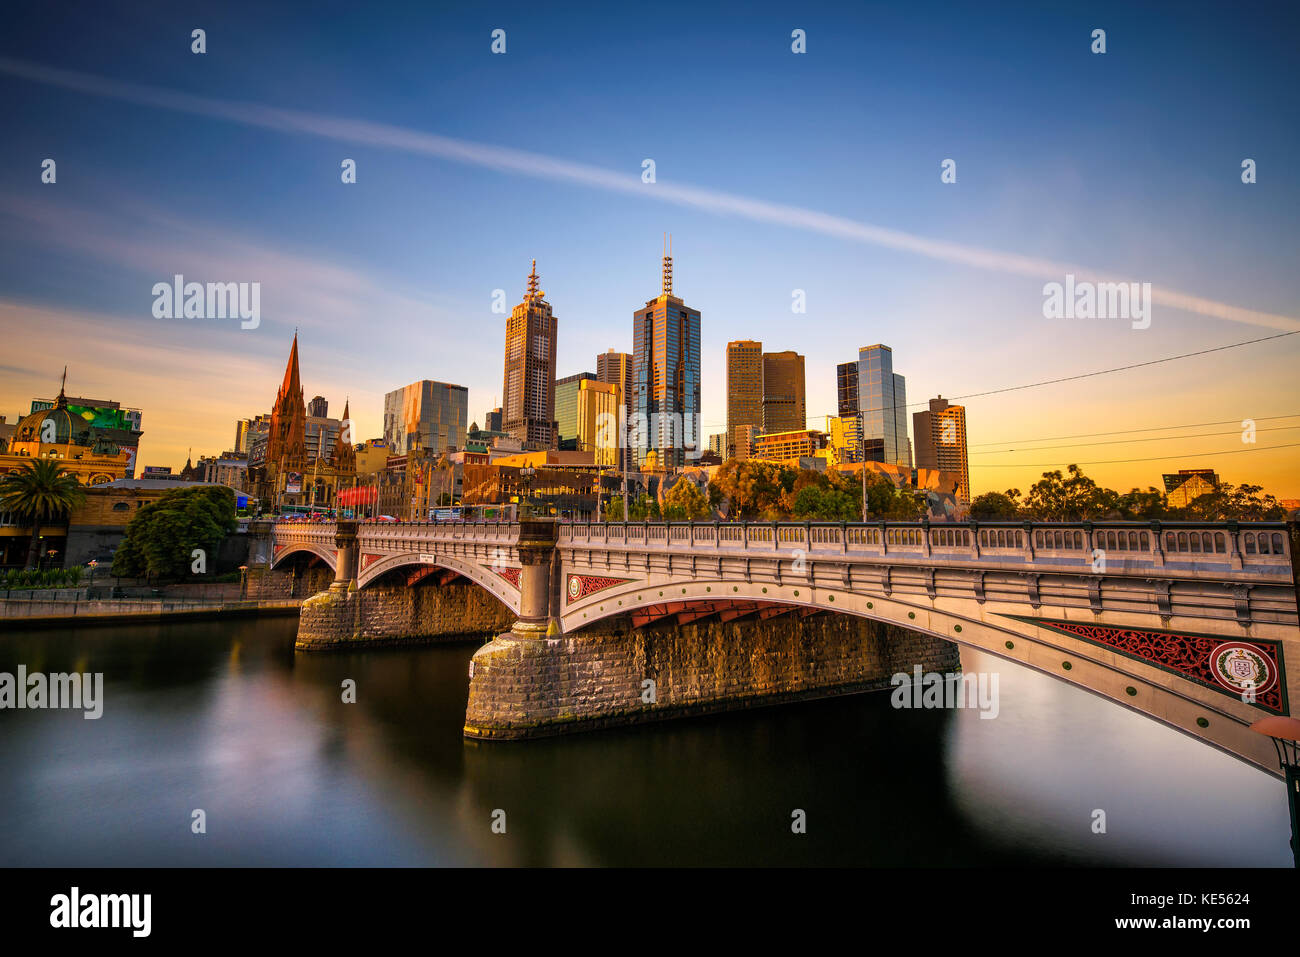 Sunset over skyline of Melbourne downtown, Princess Bridge and Yarra River - Stock Image